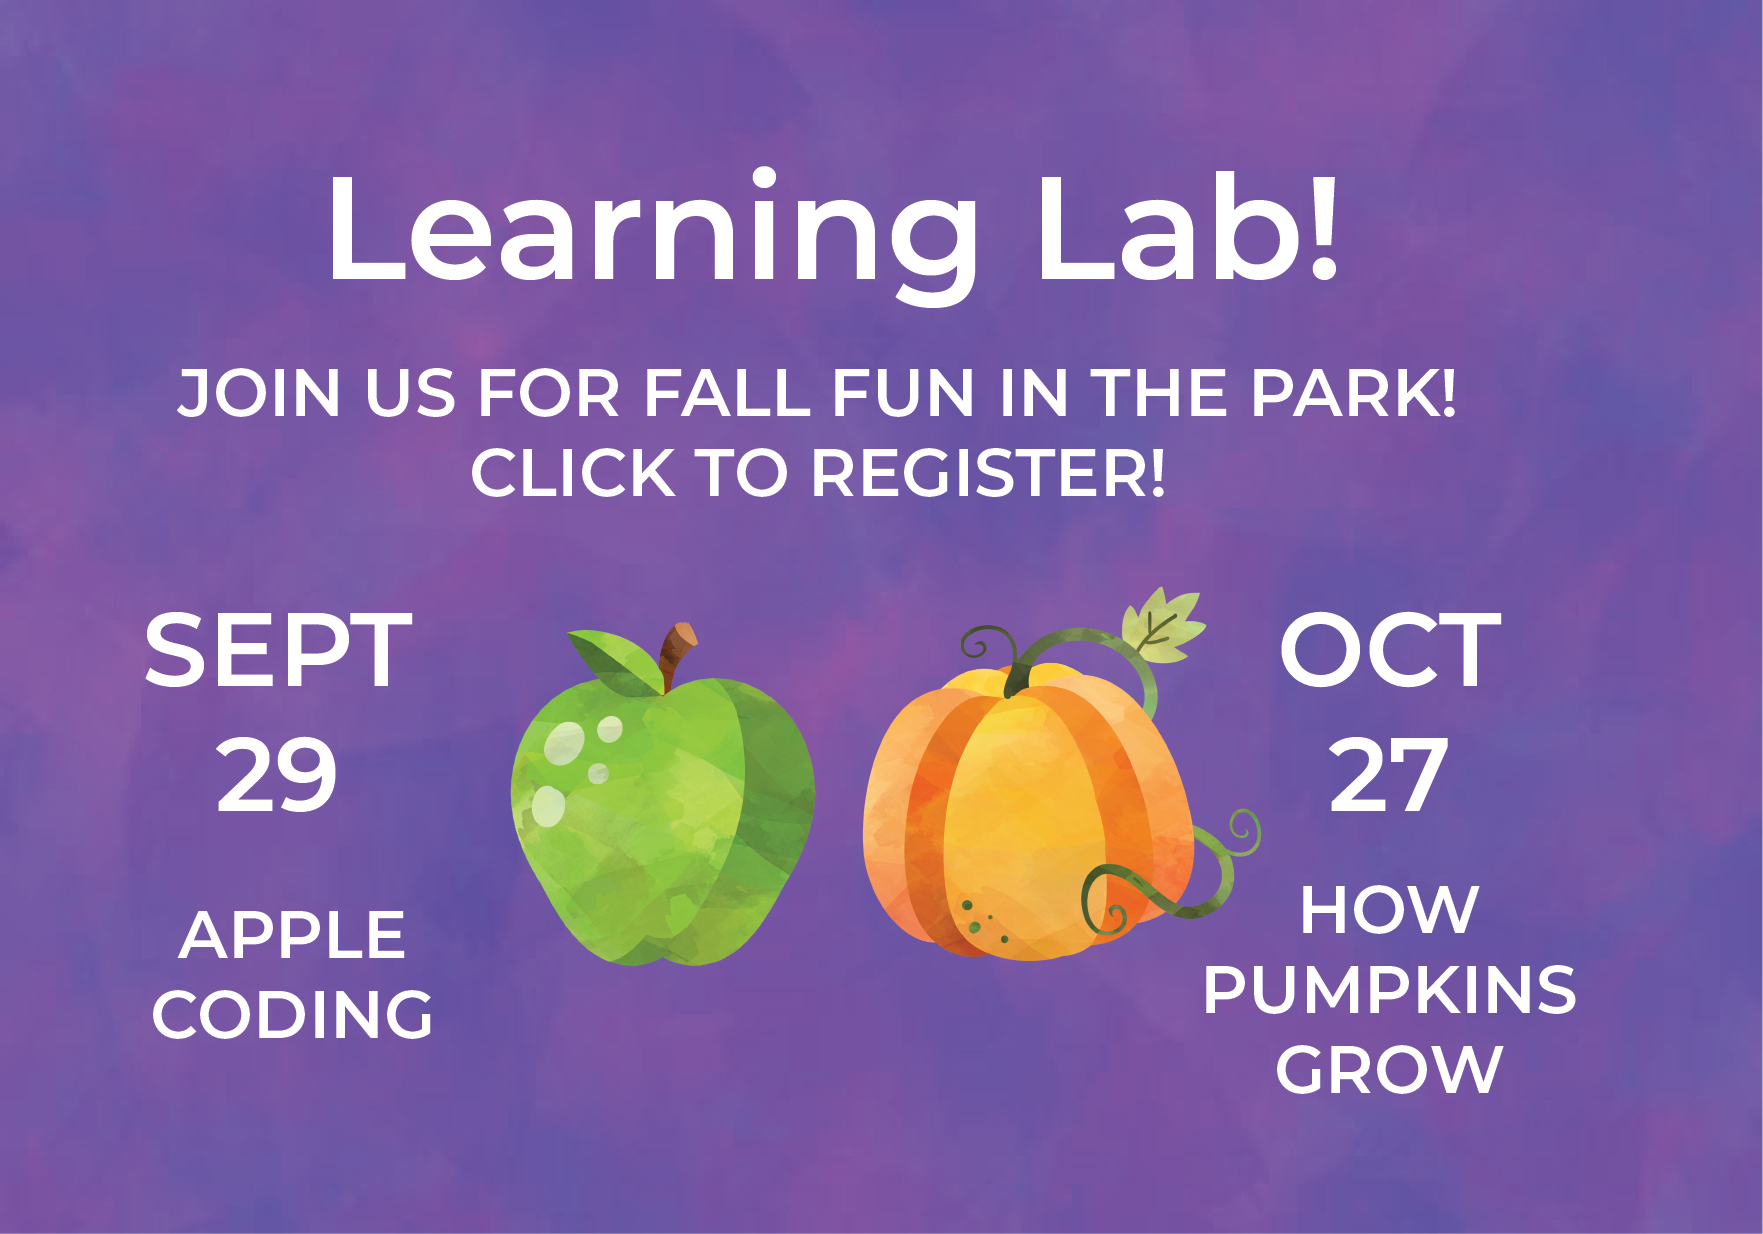 Join FCL for Fall fun in the park, must be registered. Sept 29 is learning to code with apples, and Oct 27 is learning how pumpkins grow.